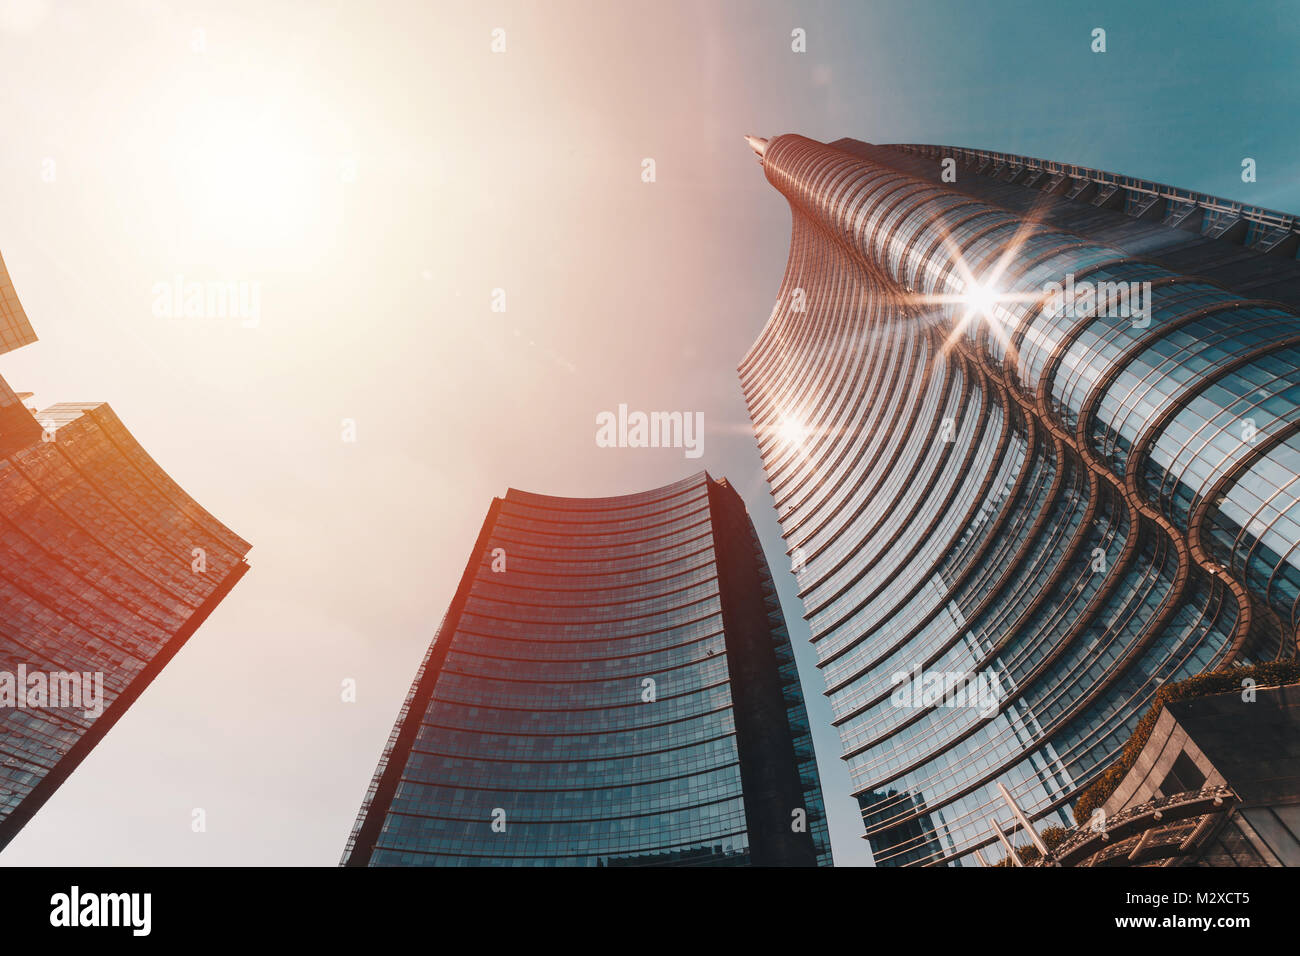 Central tower of the building complex designed by Argentine Architect Cesar Pelli in Piazza Gae Aulenti - Stock Image